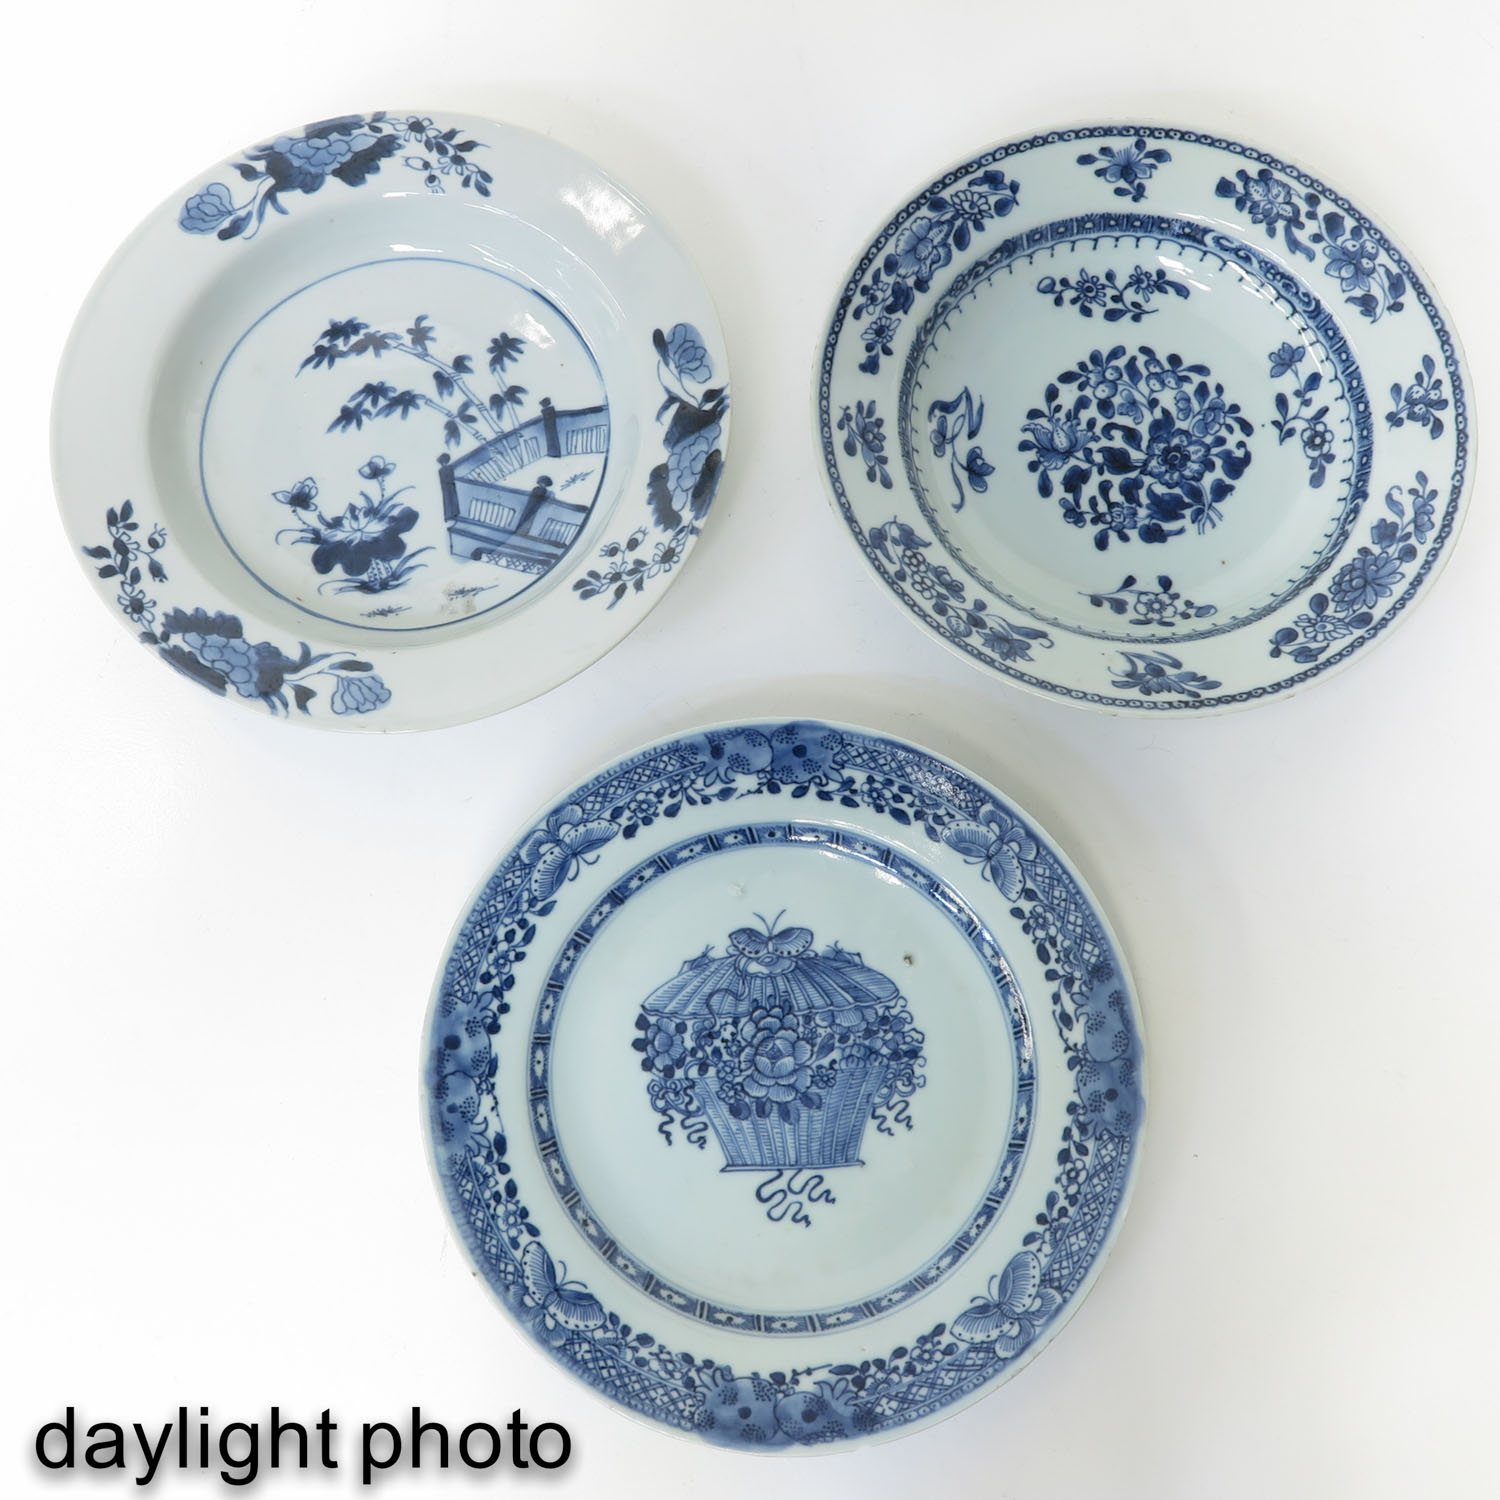 A Collection of 6 Blue and White Plates - Image 9 of 10